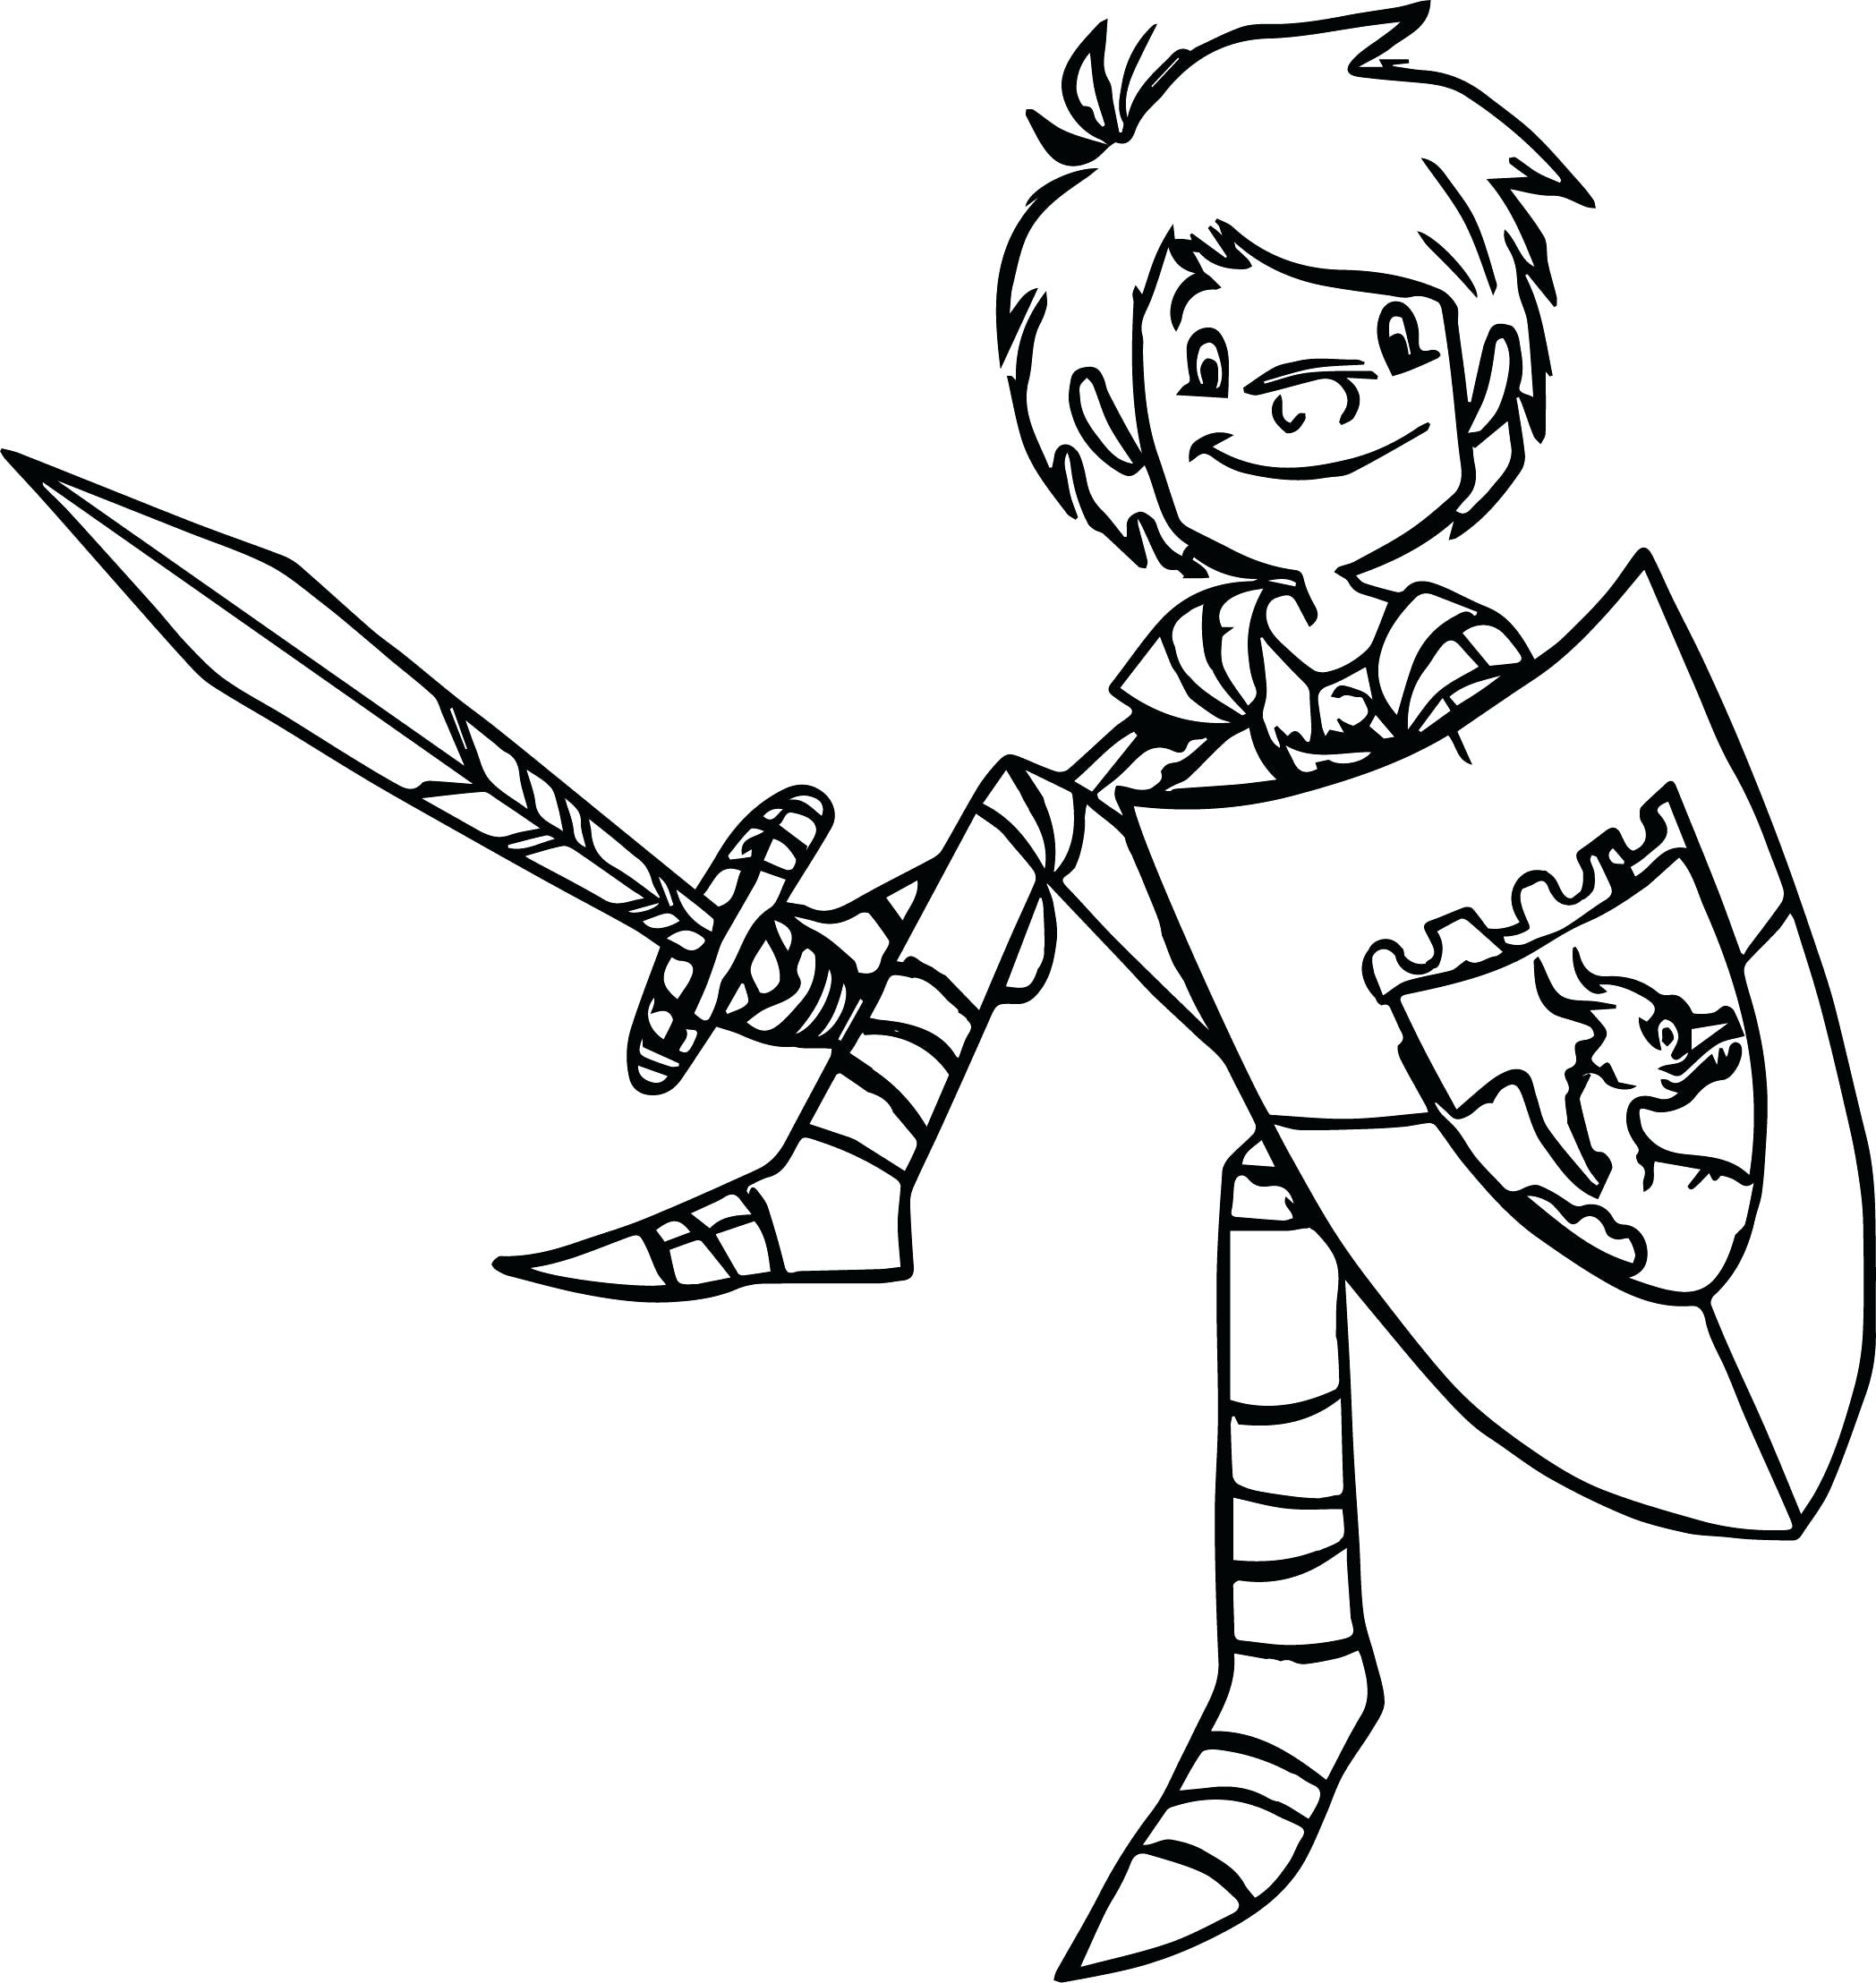 Nexo Knights Ausmalbilder Axl : Knights Drawing At Getdrawings Com Free For Personal Use Knights